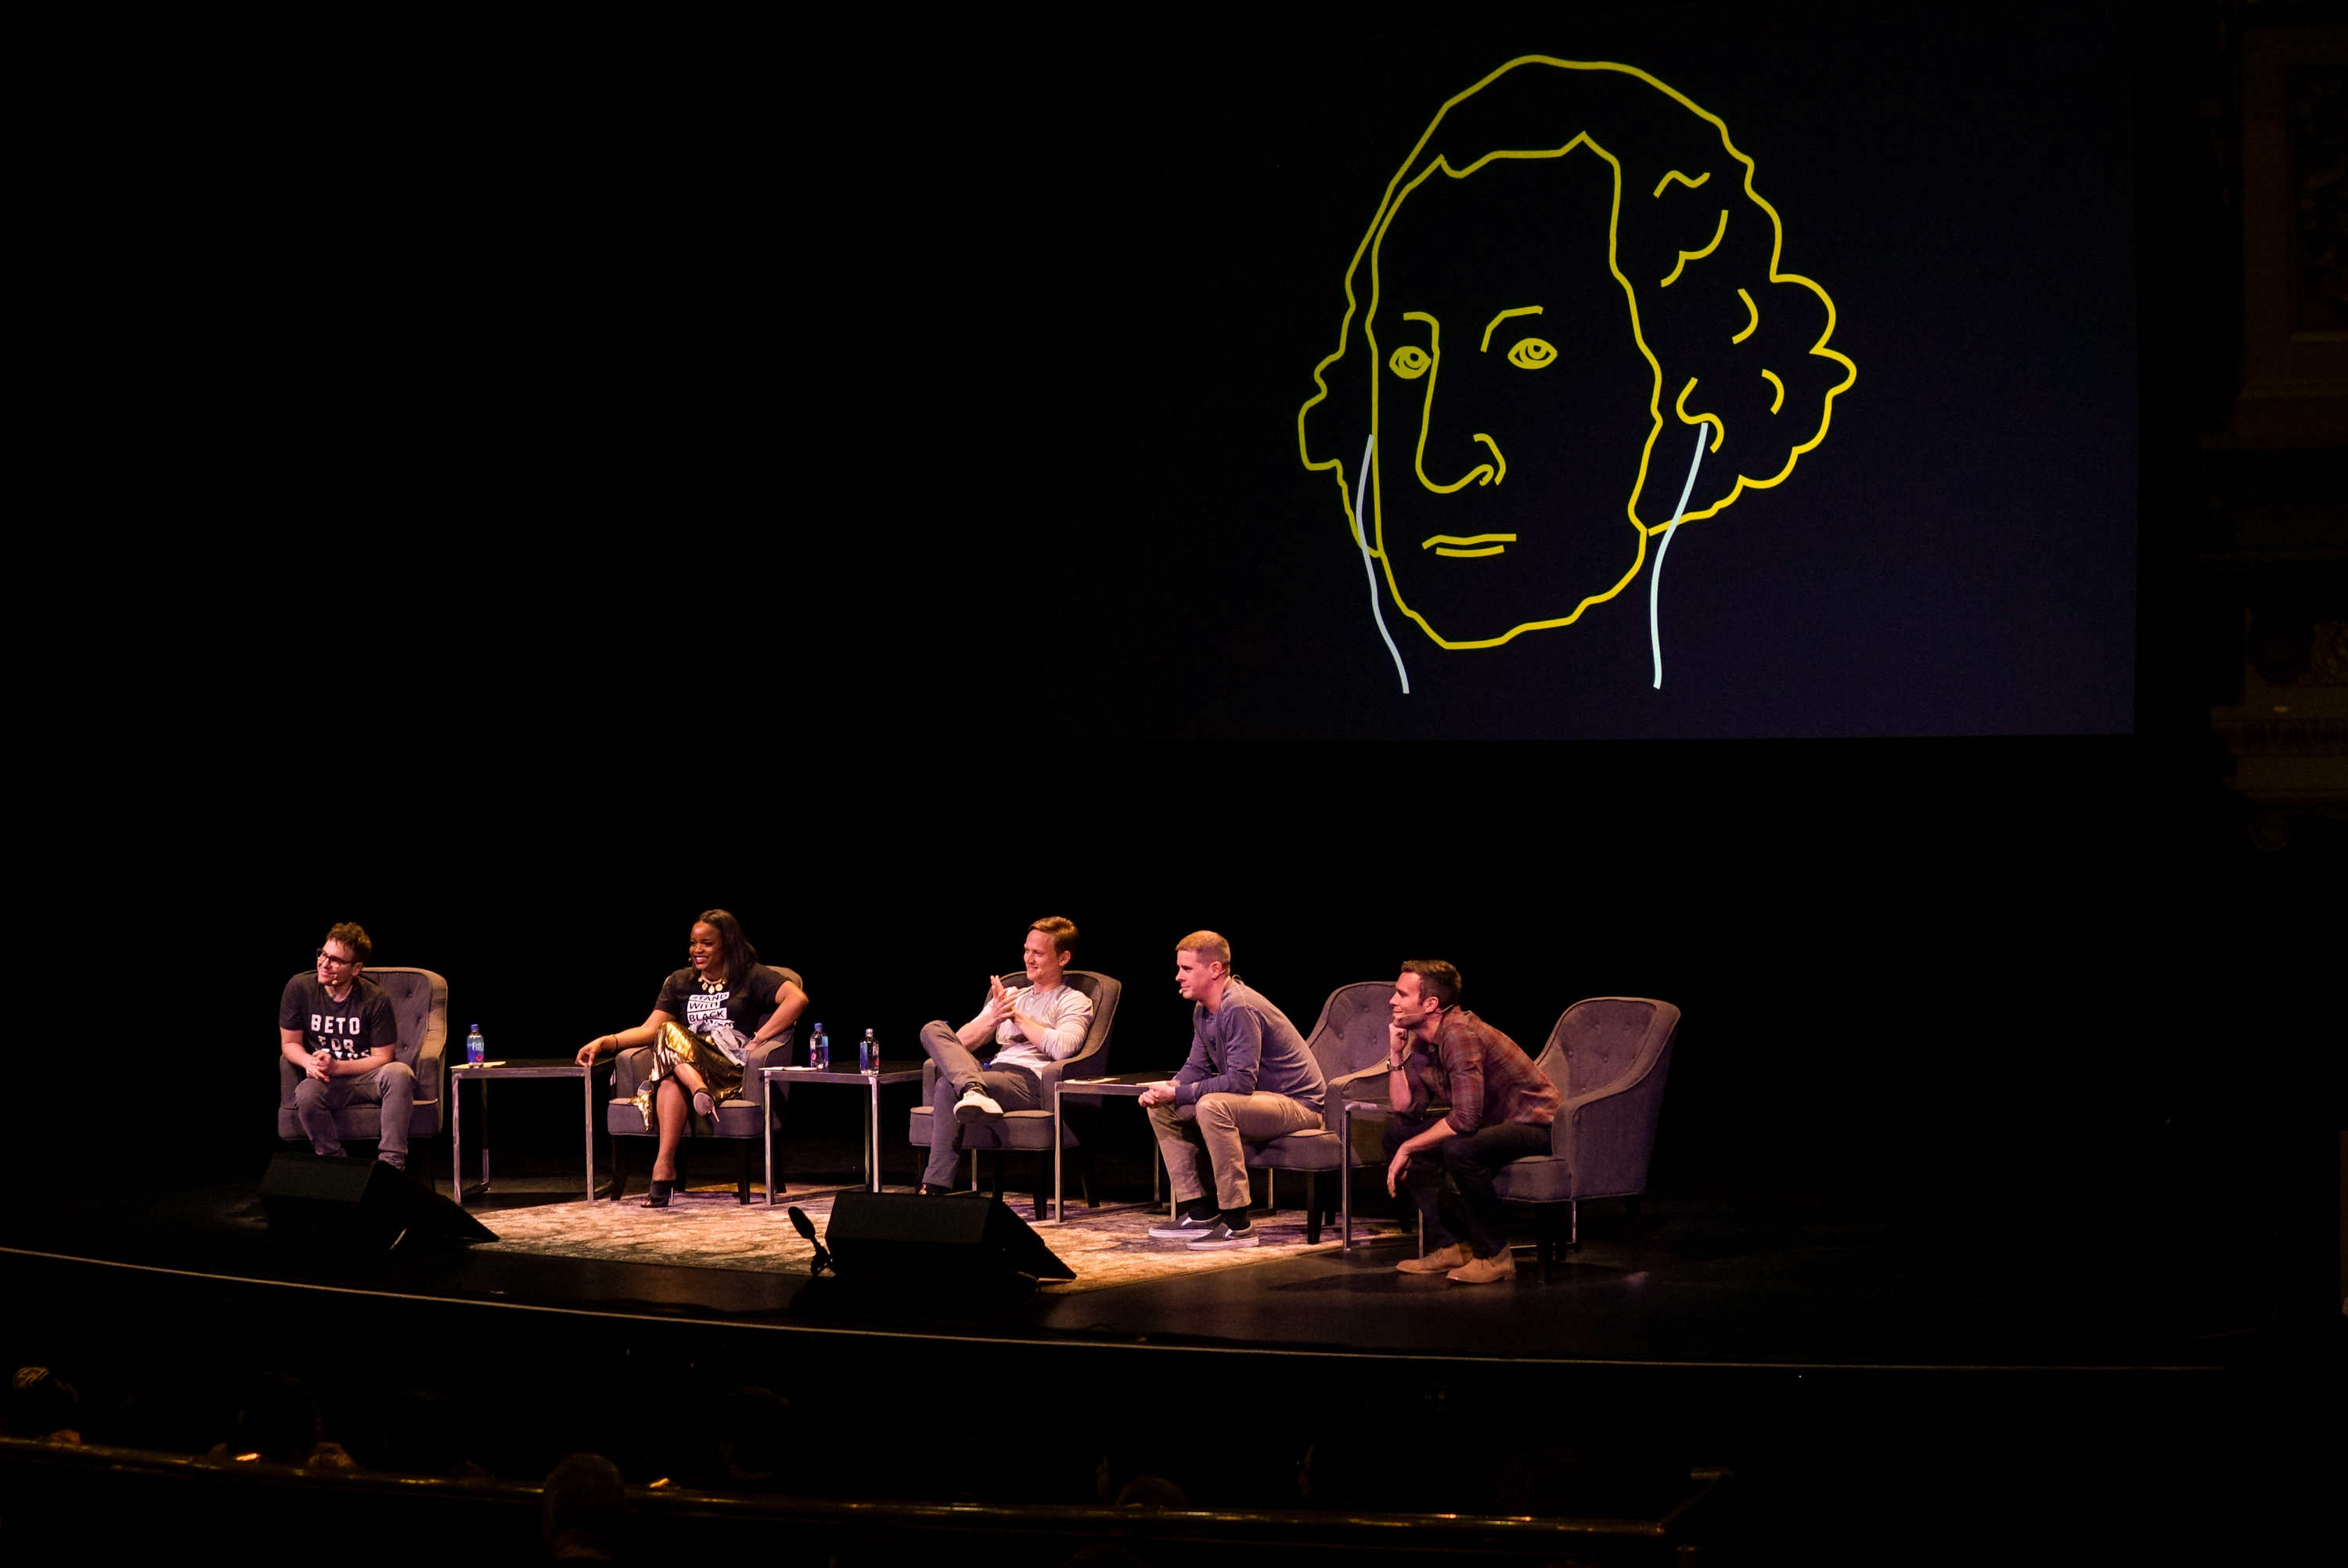 In March, the hosts of Pod Save America did a live broadcast in Dallas. (Jason Burles/CBC)